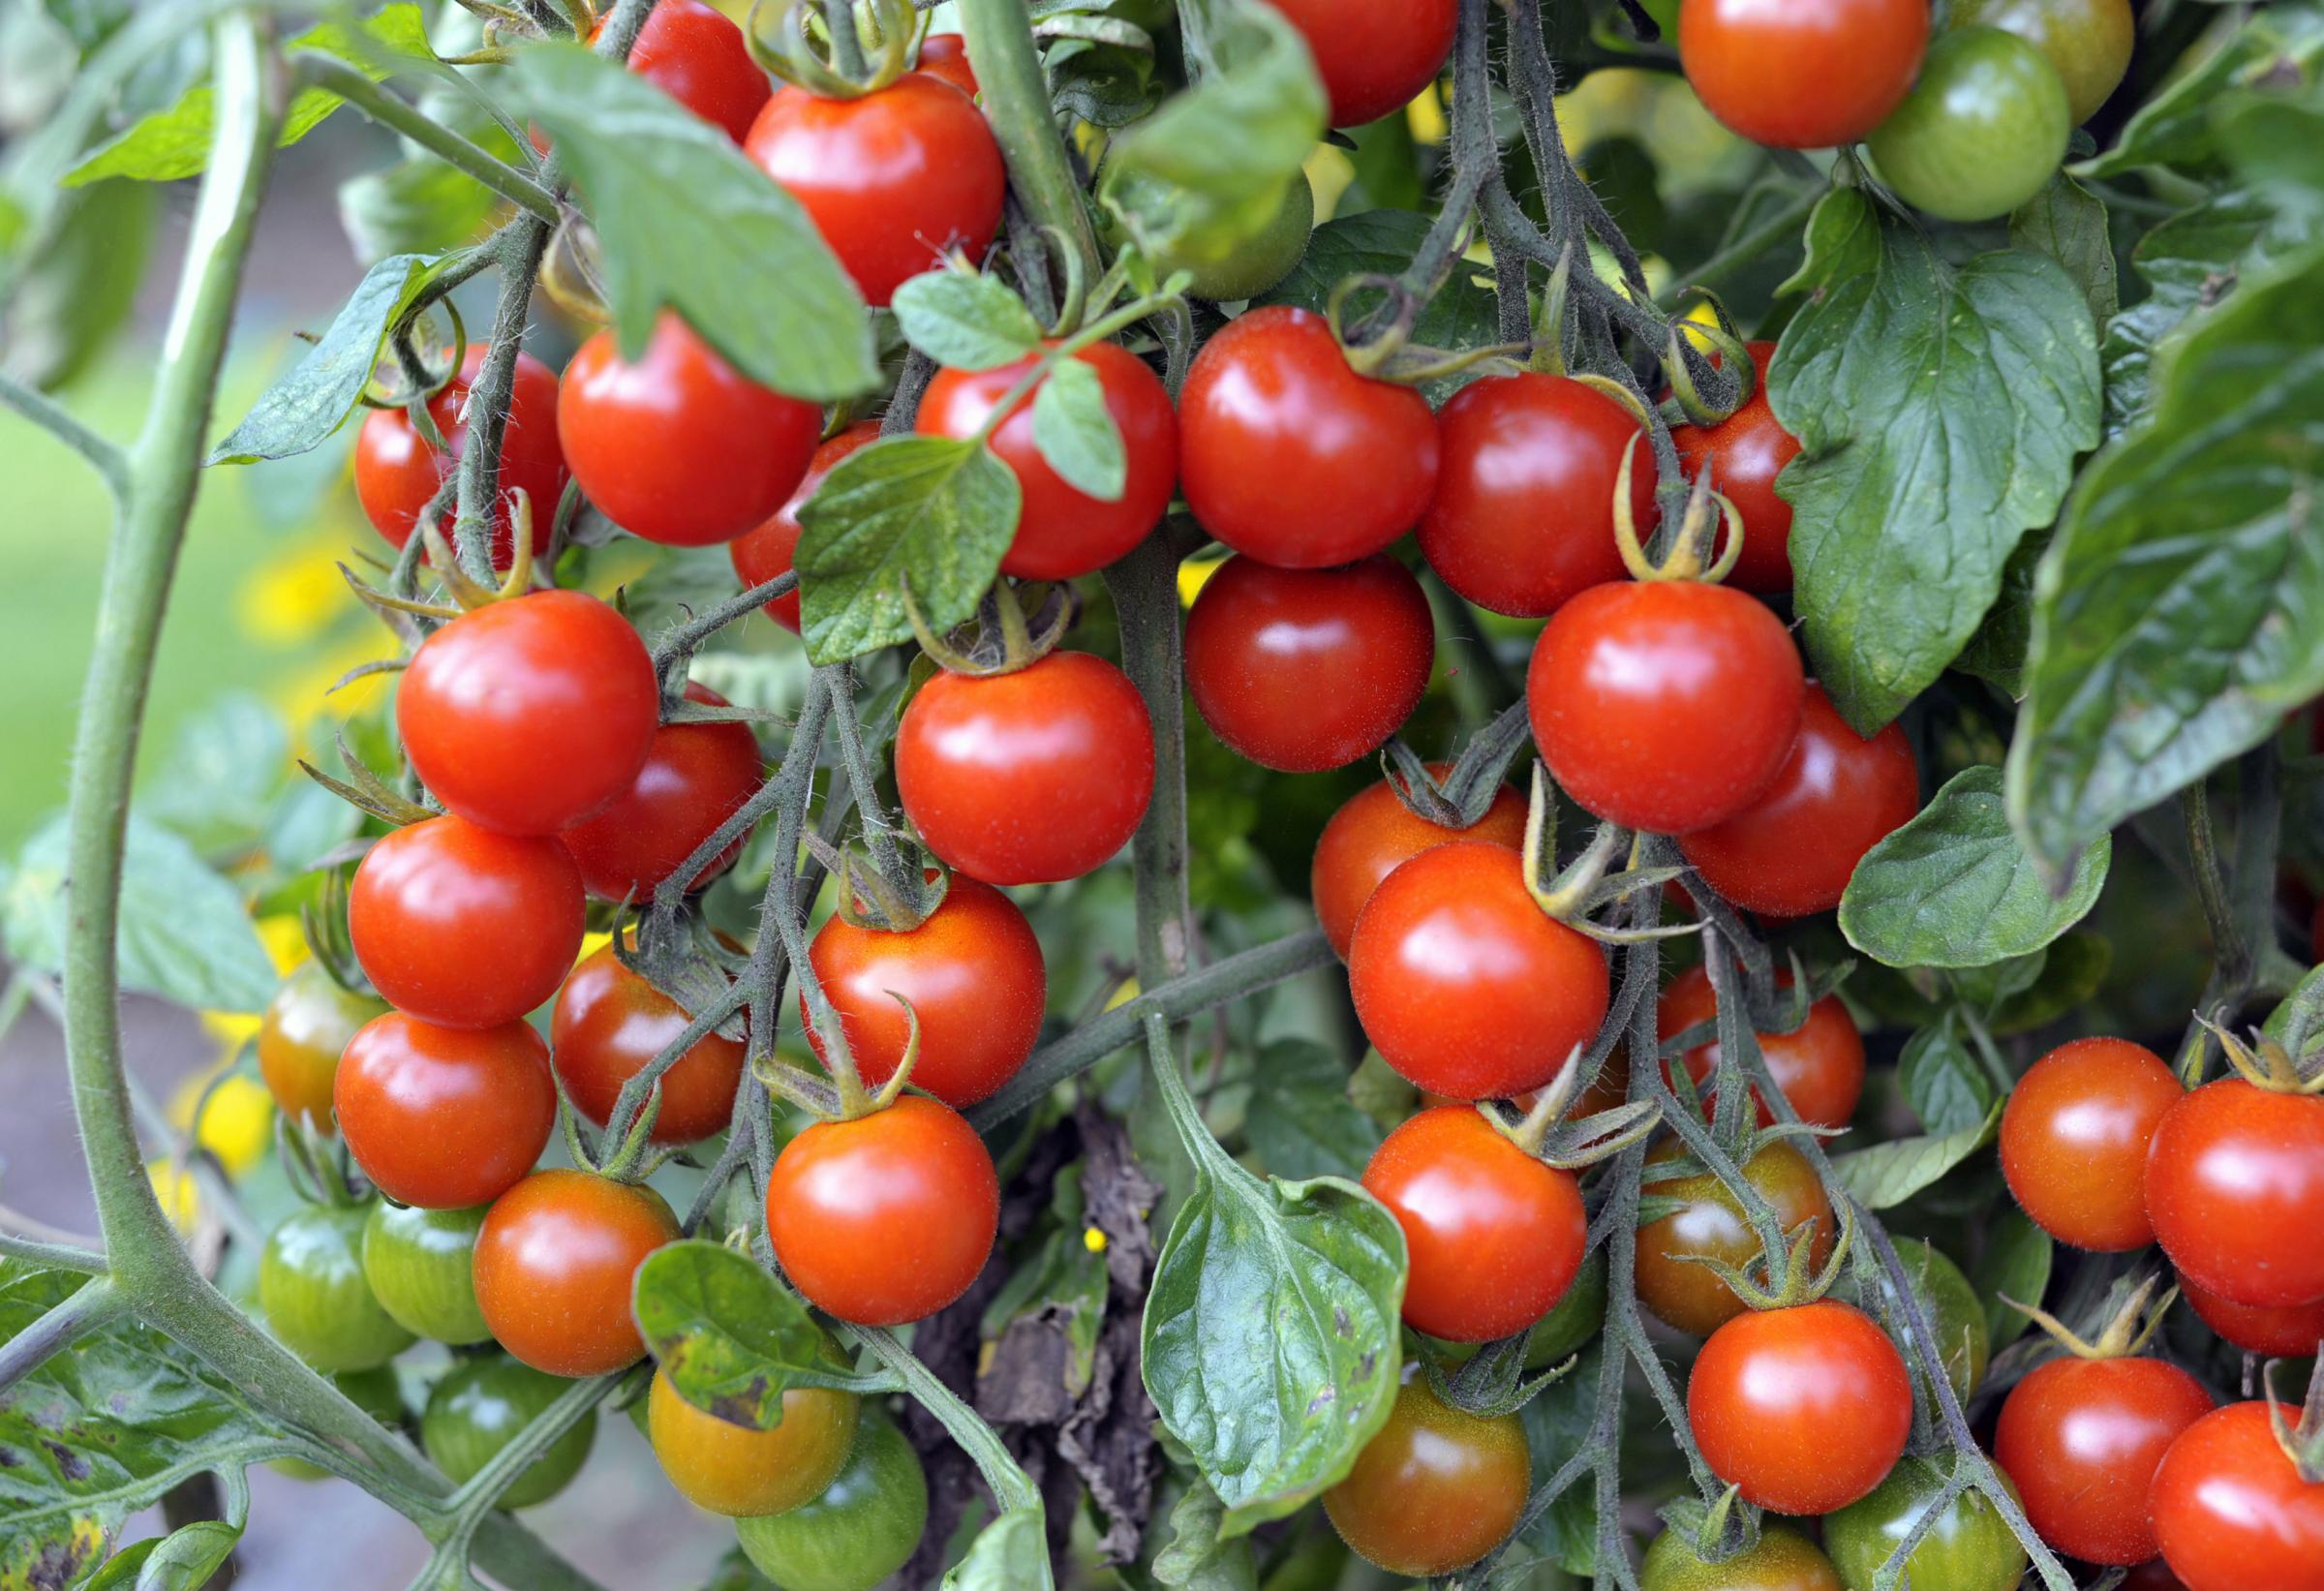 Undated Handout Photo of trusses of tomatoes. See PA Feature GARDENING Advice Tomato. Picture credit should read: iStock/PA. WARNING: This picture must only be used to accompany PA Feature GARDENING Advice Tomato.